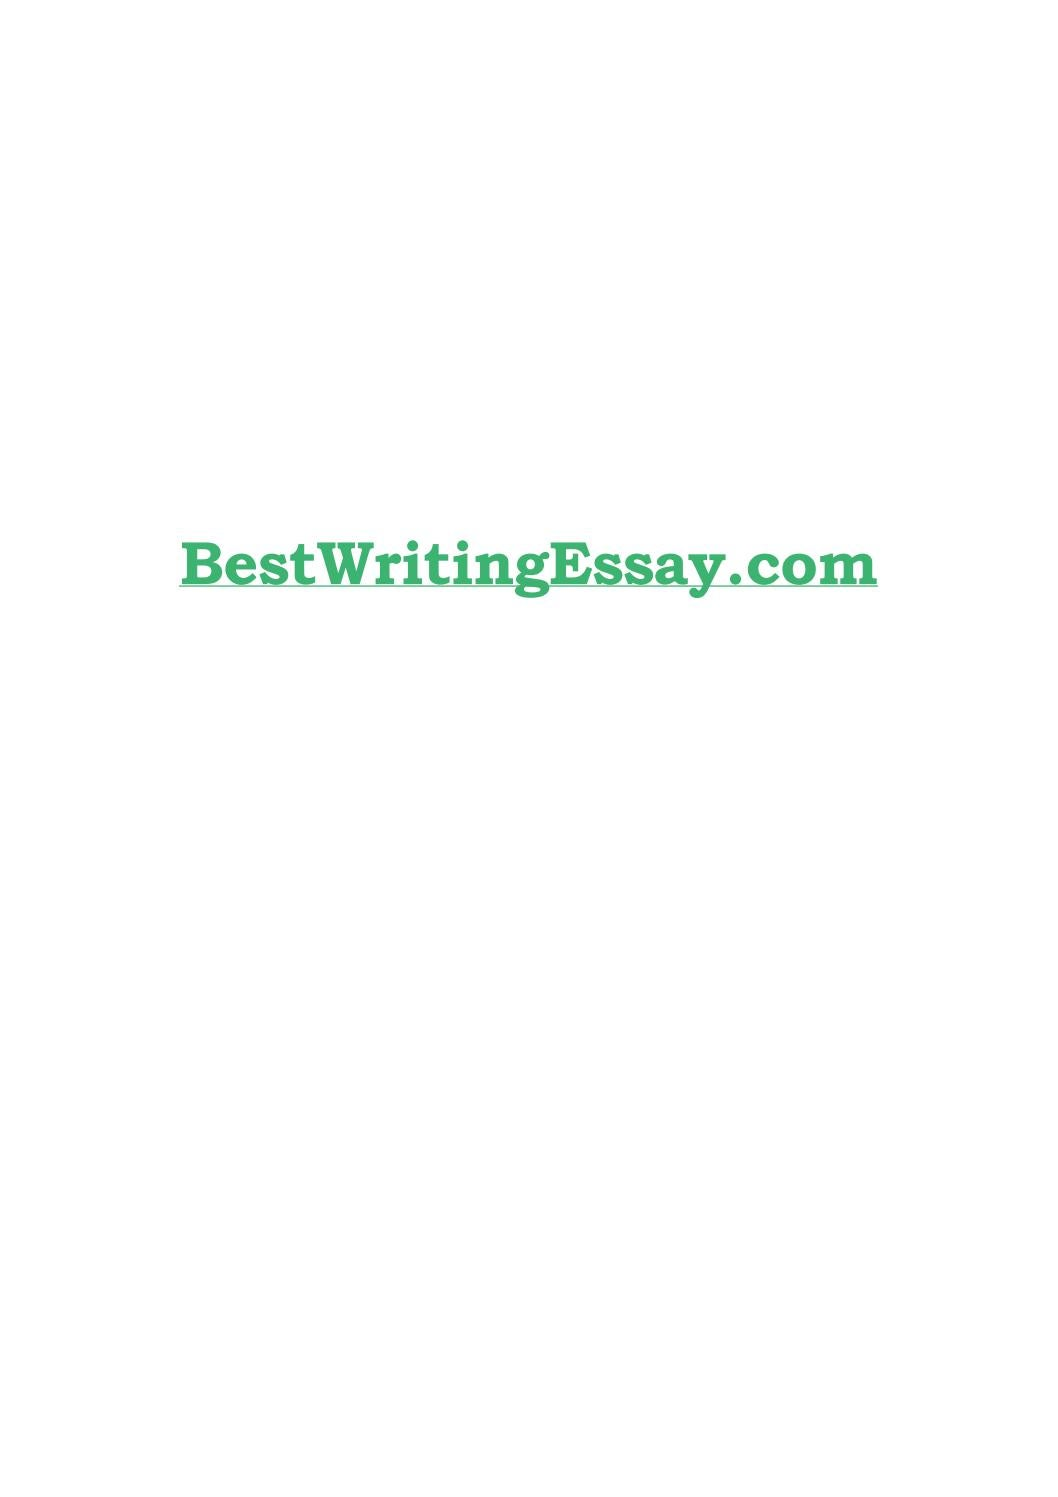 The Importance Of English Essay  Best Business School Essays also How To Write A Thesis Essay English Essay Topics For College Students By Codyrfvnq   Issuu Proposal Argument Essay Topics